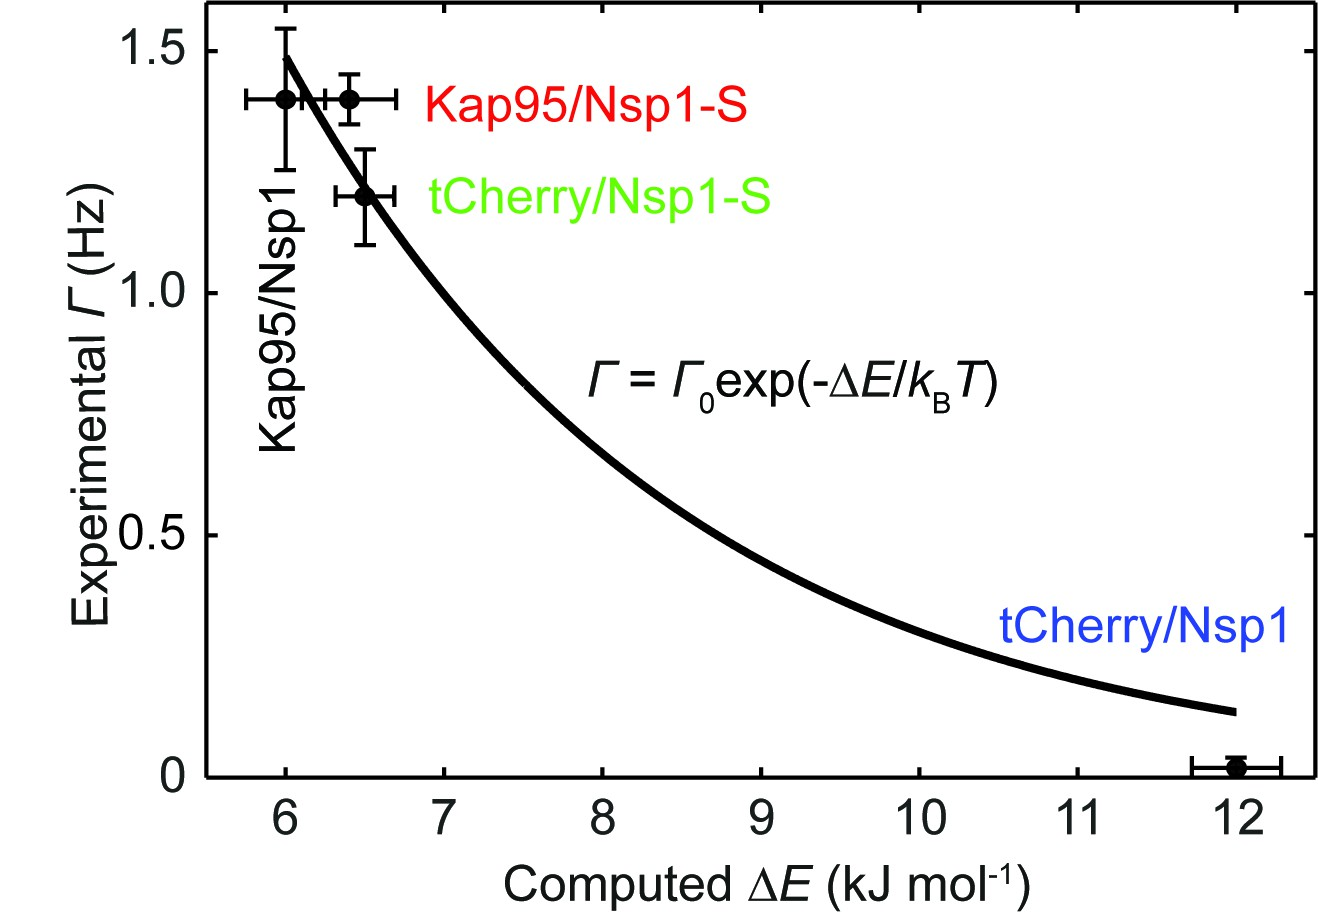 hight resolution of experimental event rate math processing error 0 versus the computed energy barrier e for tcherry and kap95 in nsp1 and nsp1 s pores